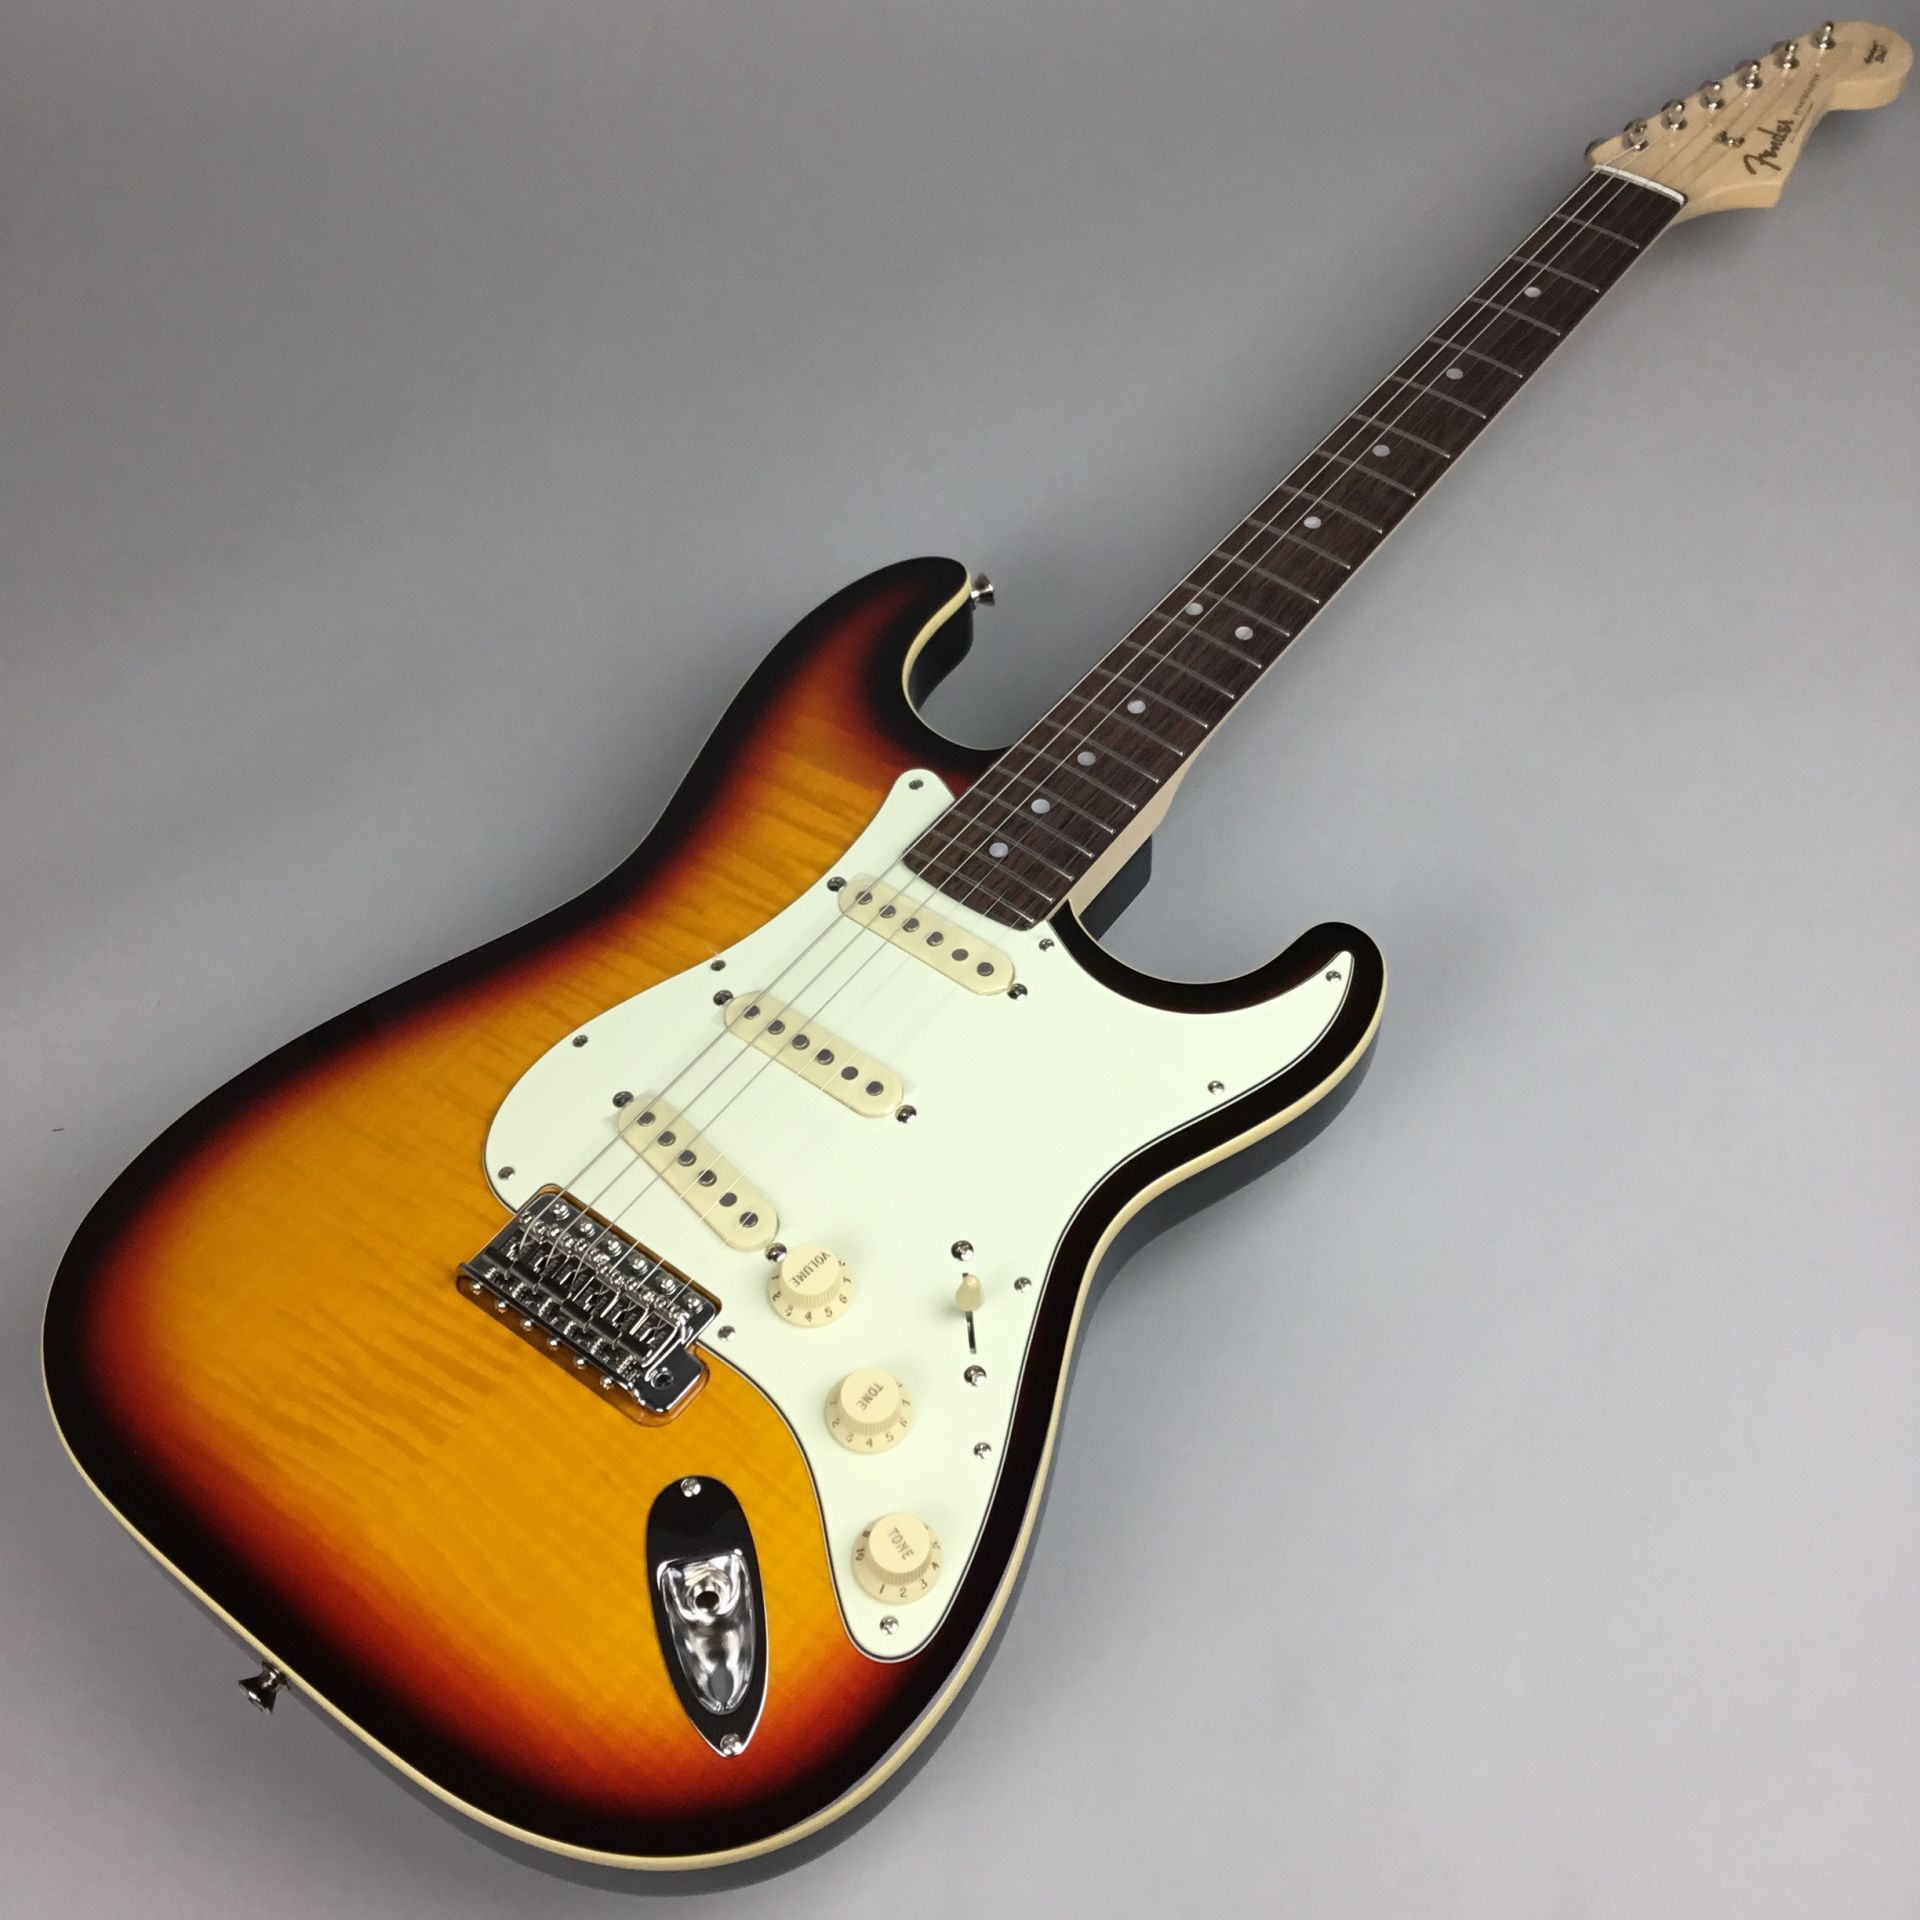 LIMITED EDITION AERODYNE CLASSIC STRATOCASTER® FLAME MAPLE TOPのボディトップ-アップ画像